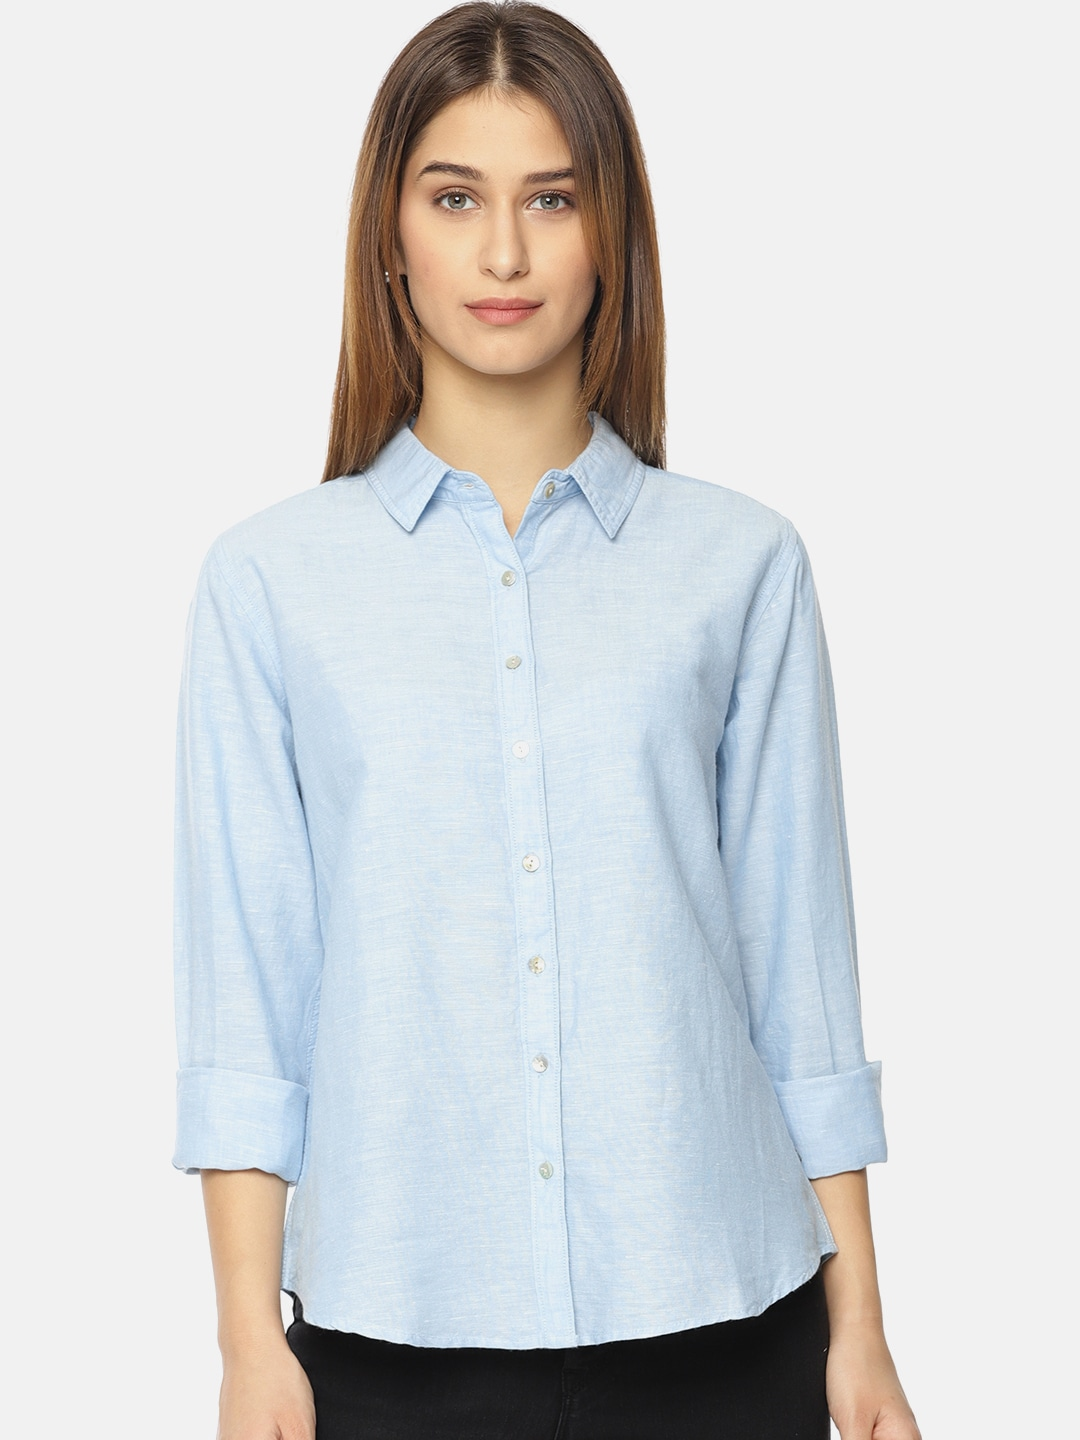 08baa7cd1d3 Pepe Jeans Linen Shirts - Buy Pepe Jeans Linen Shirts online in India